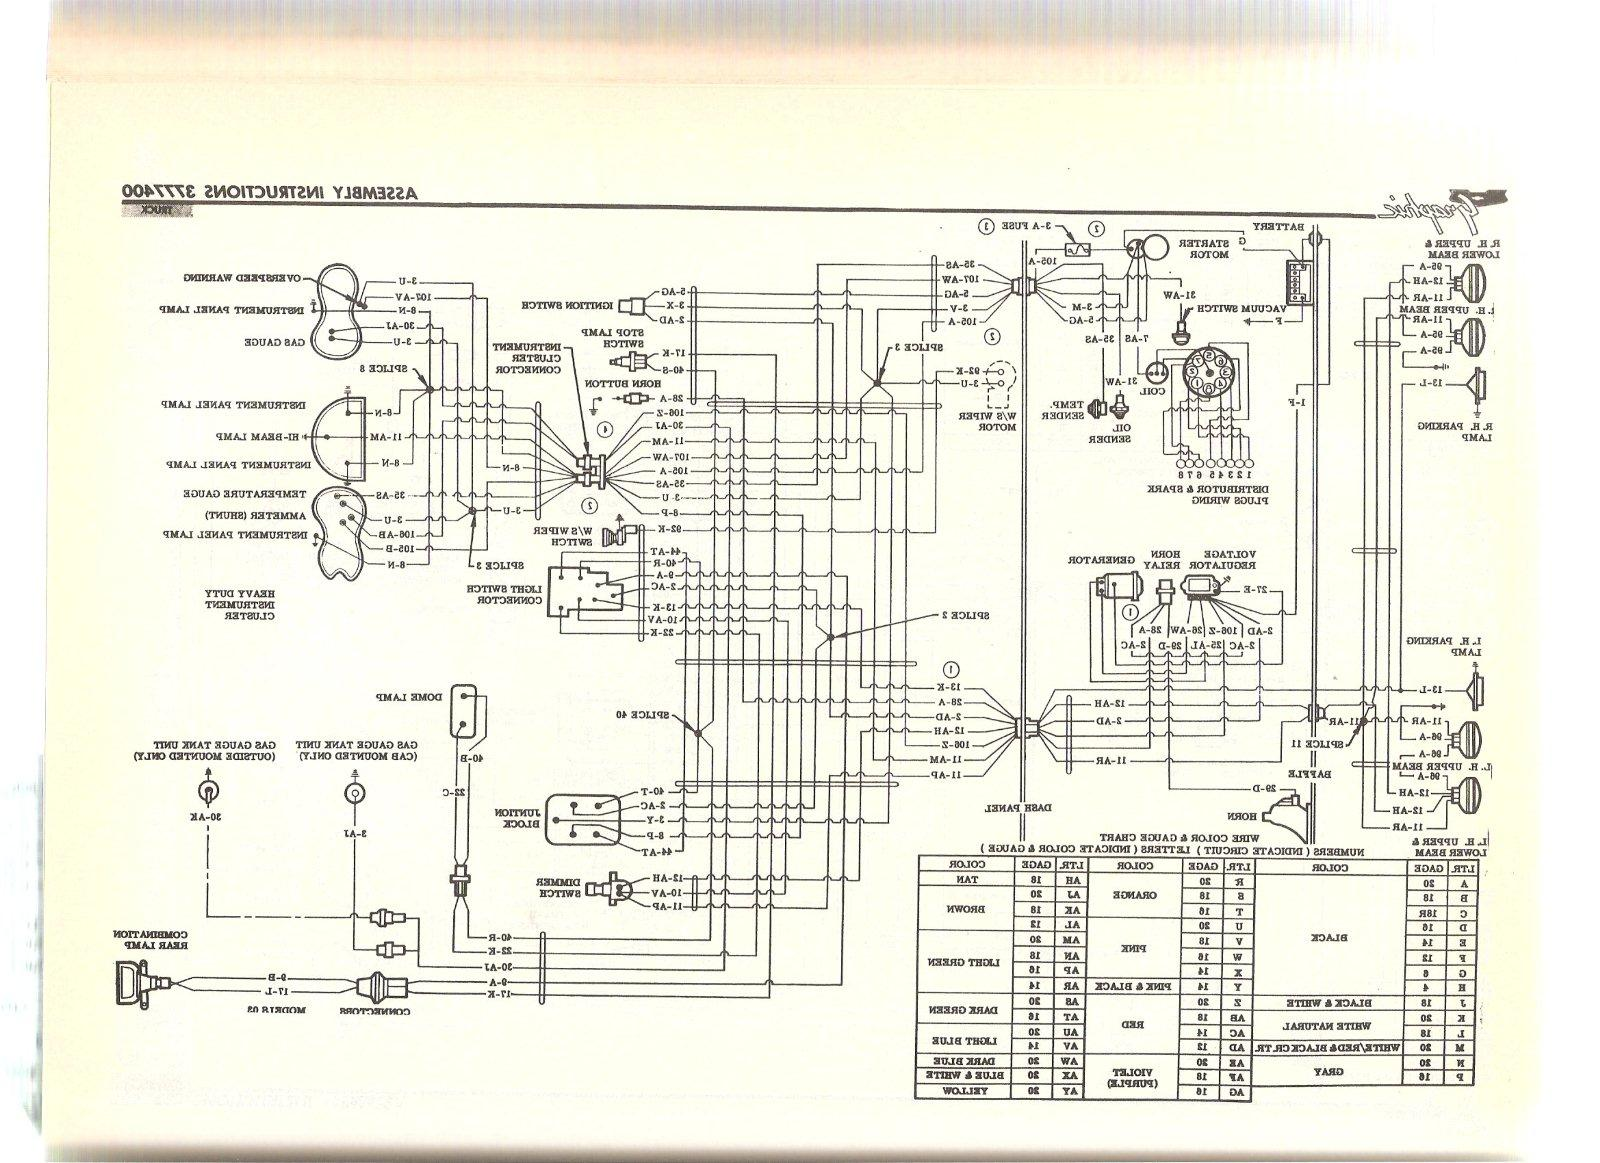 Electrical Wiring Diagram 1954 Dodge Library